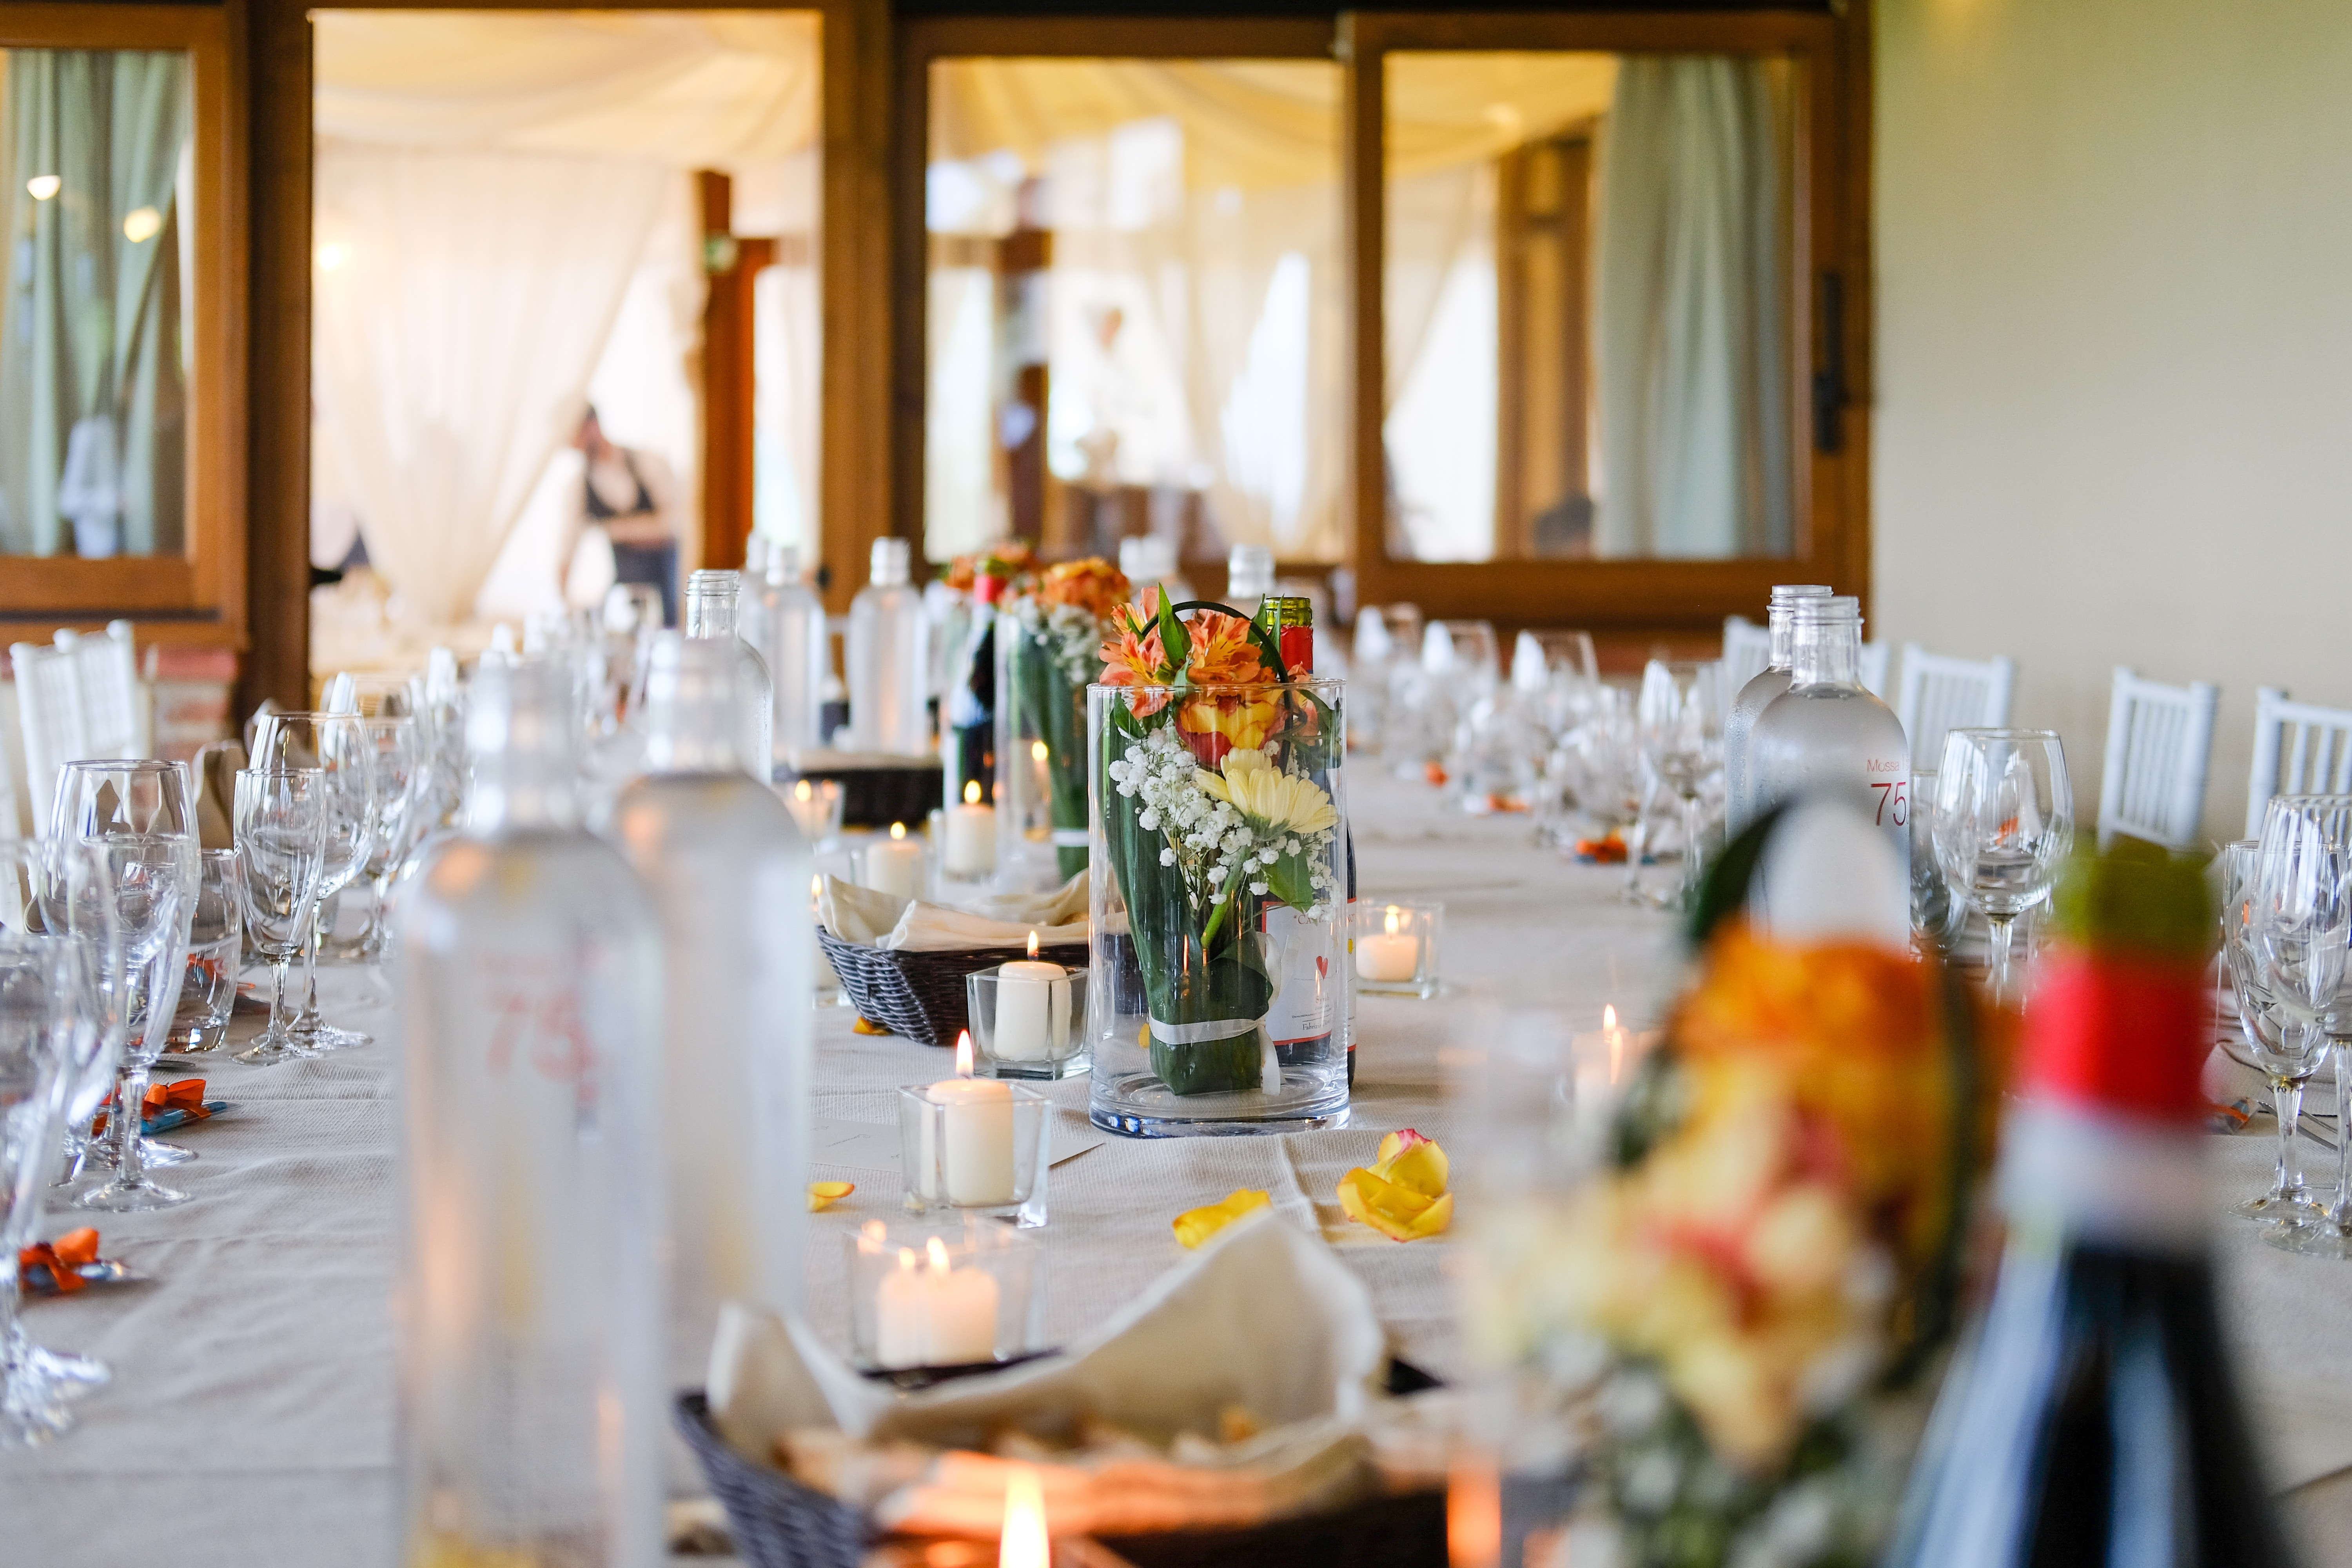 Hochzeit-Catering-Fingerfood-Buffet-Planung-Locationsuche